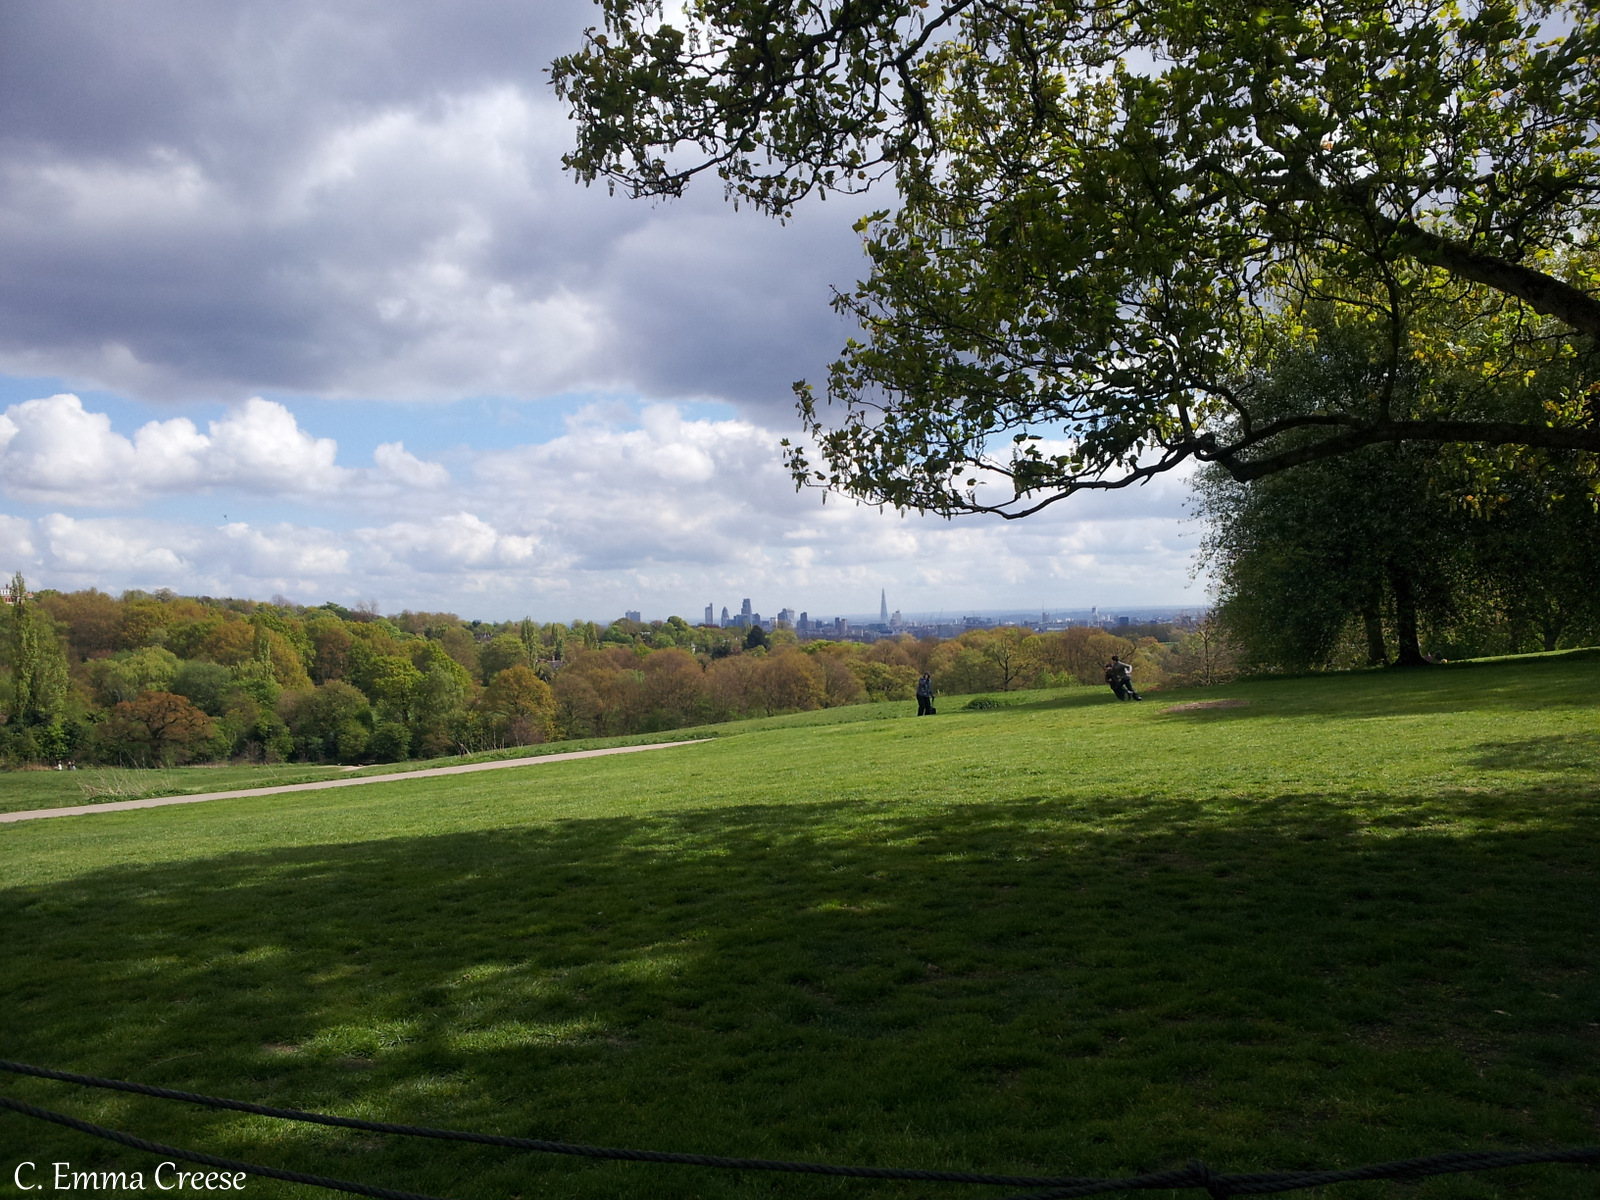 Hampstead Heath The 10 best picnic spots in London Adventures of a London Kiwi